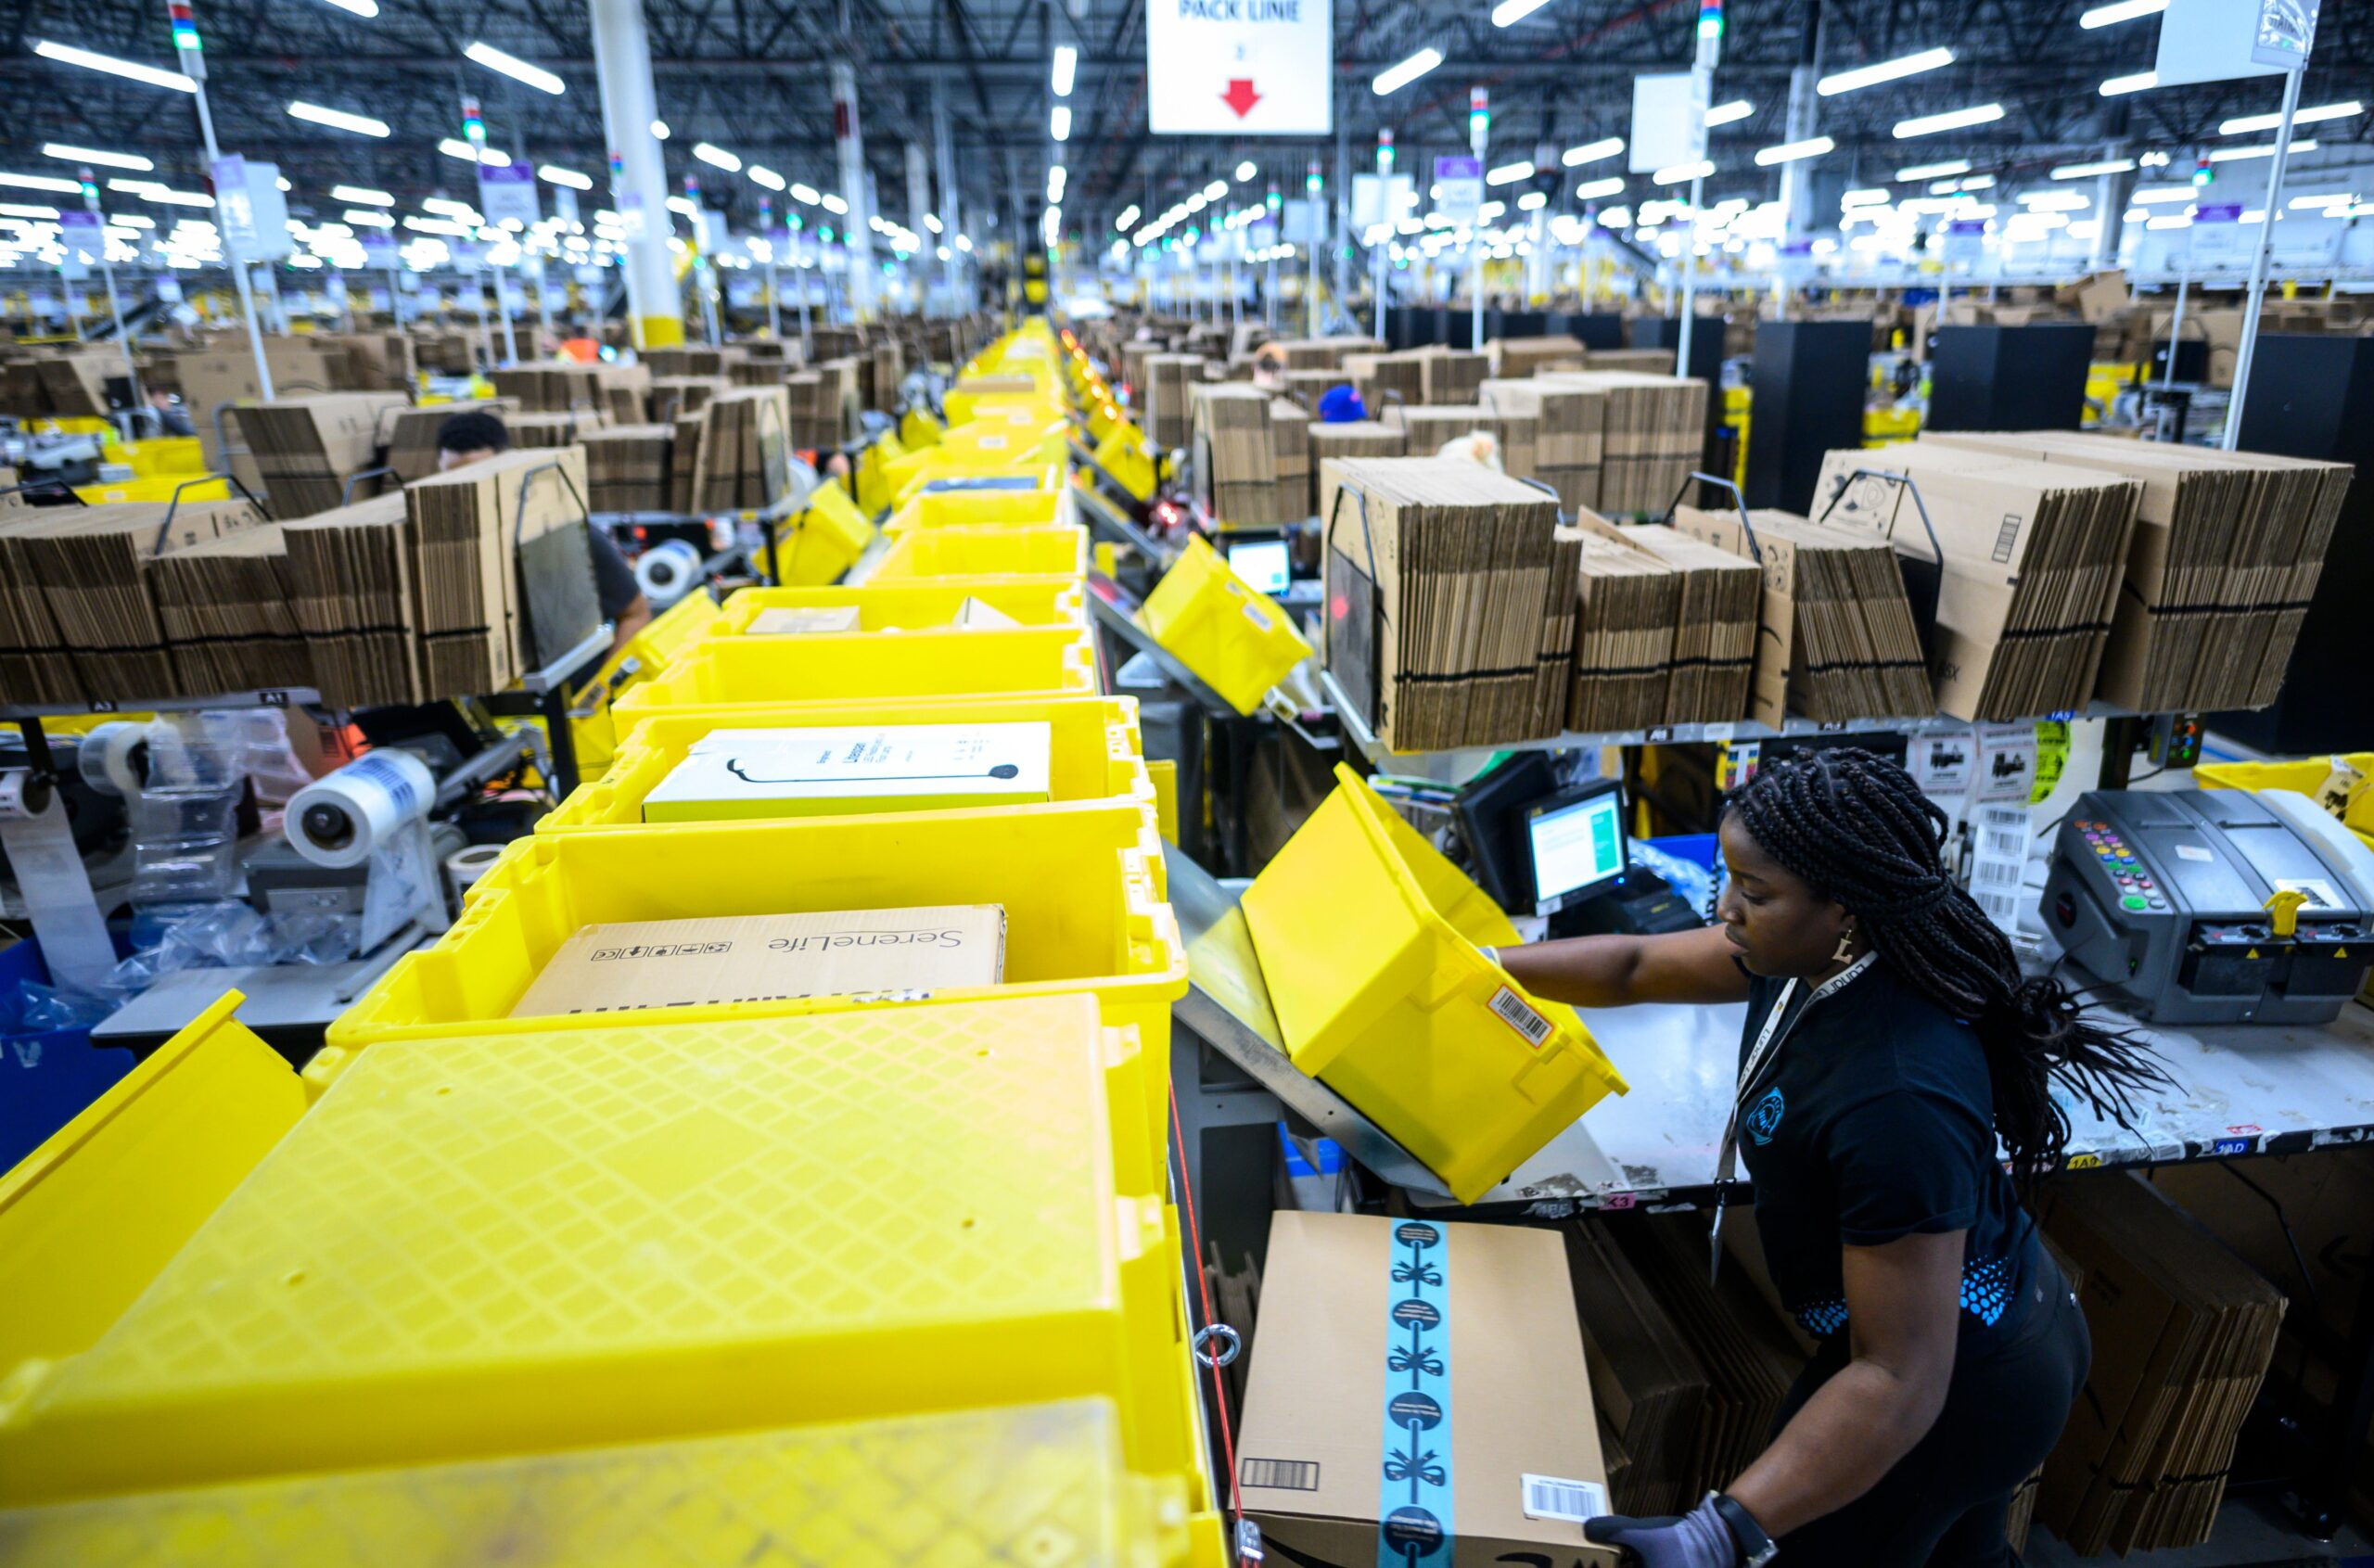 Black Friday rush must not cost Amazon workers their health and safety